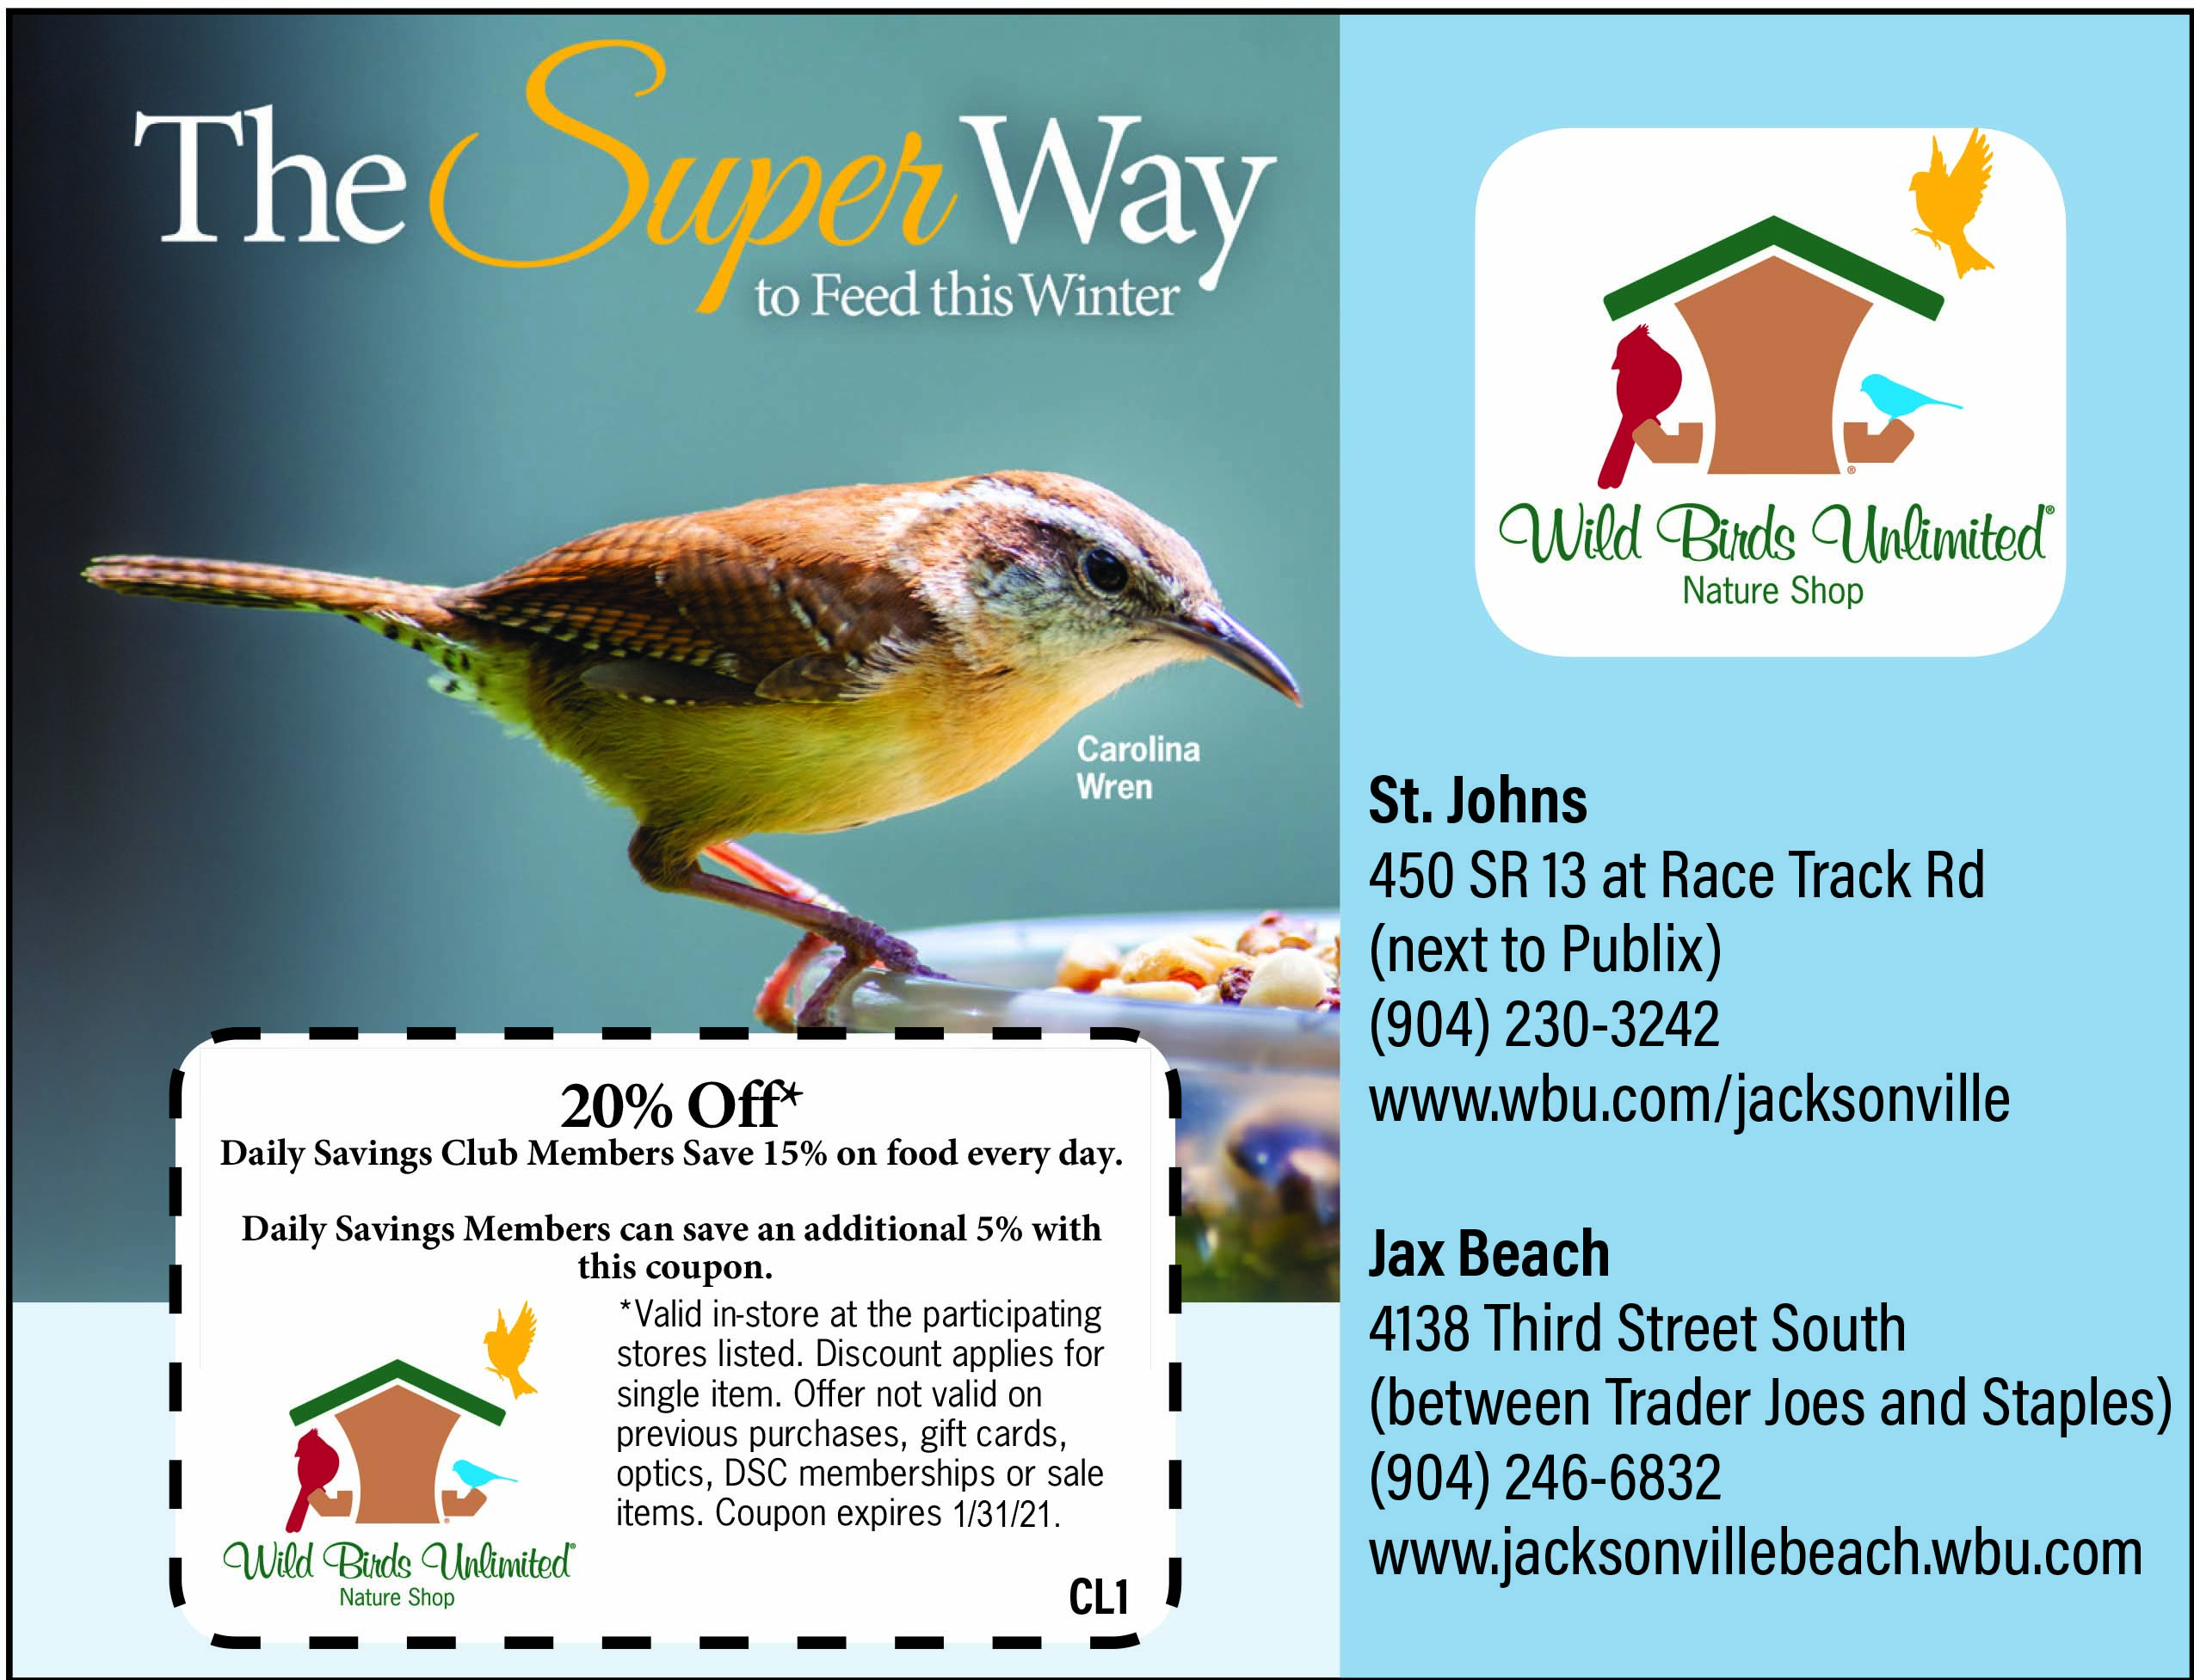 Wild Birds Unlimited Nature shop. the super wat to feed this winter